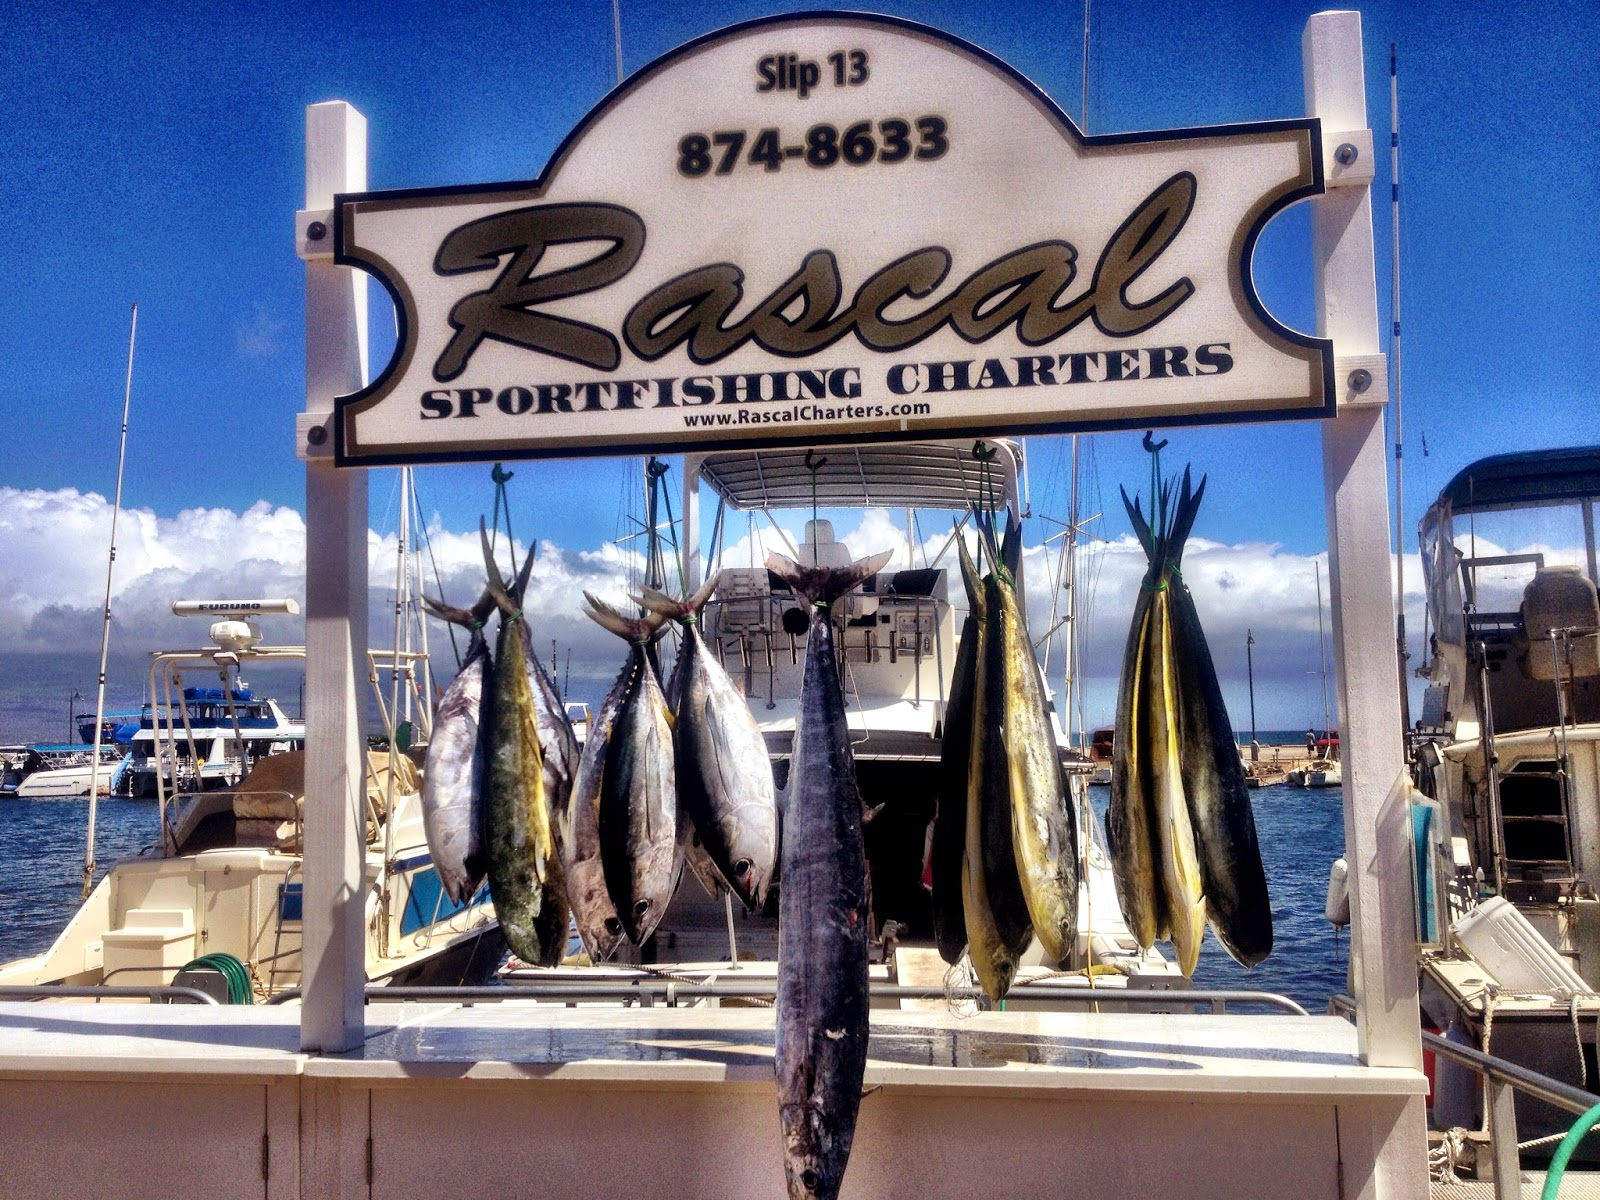 Tickets and reservations for Maui sport fishing charters